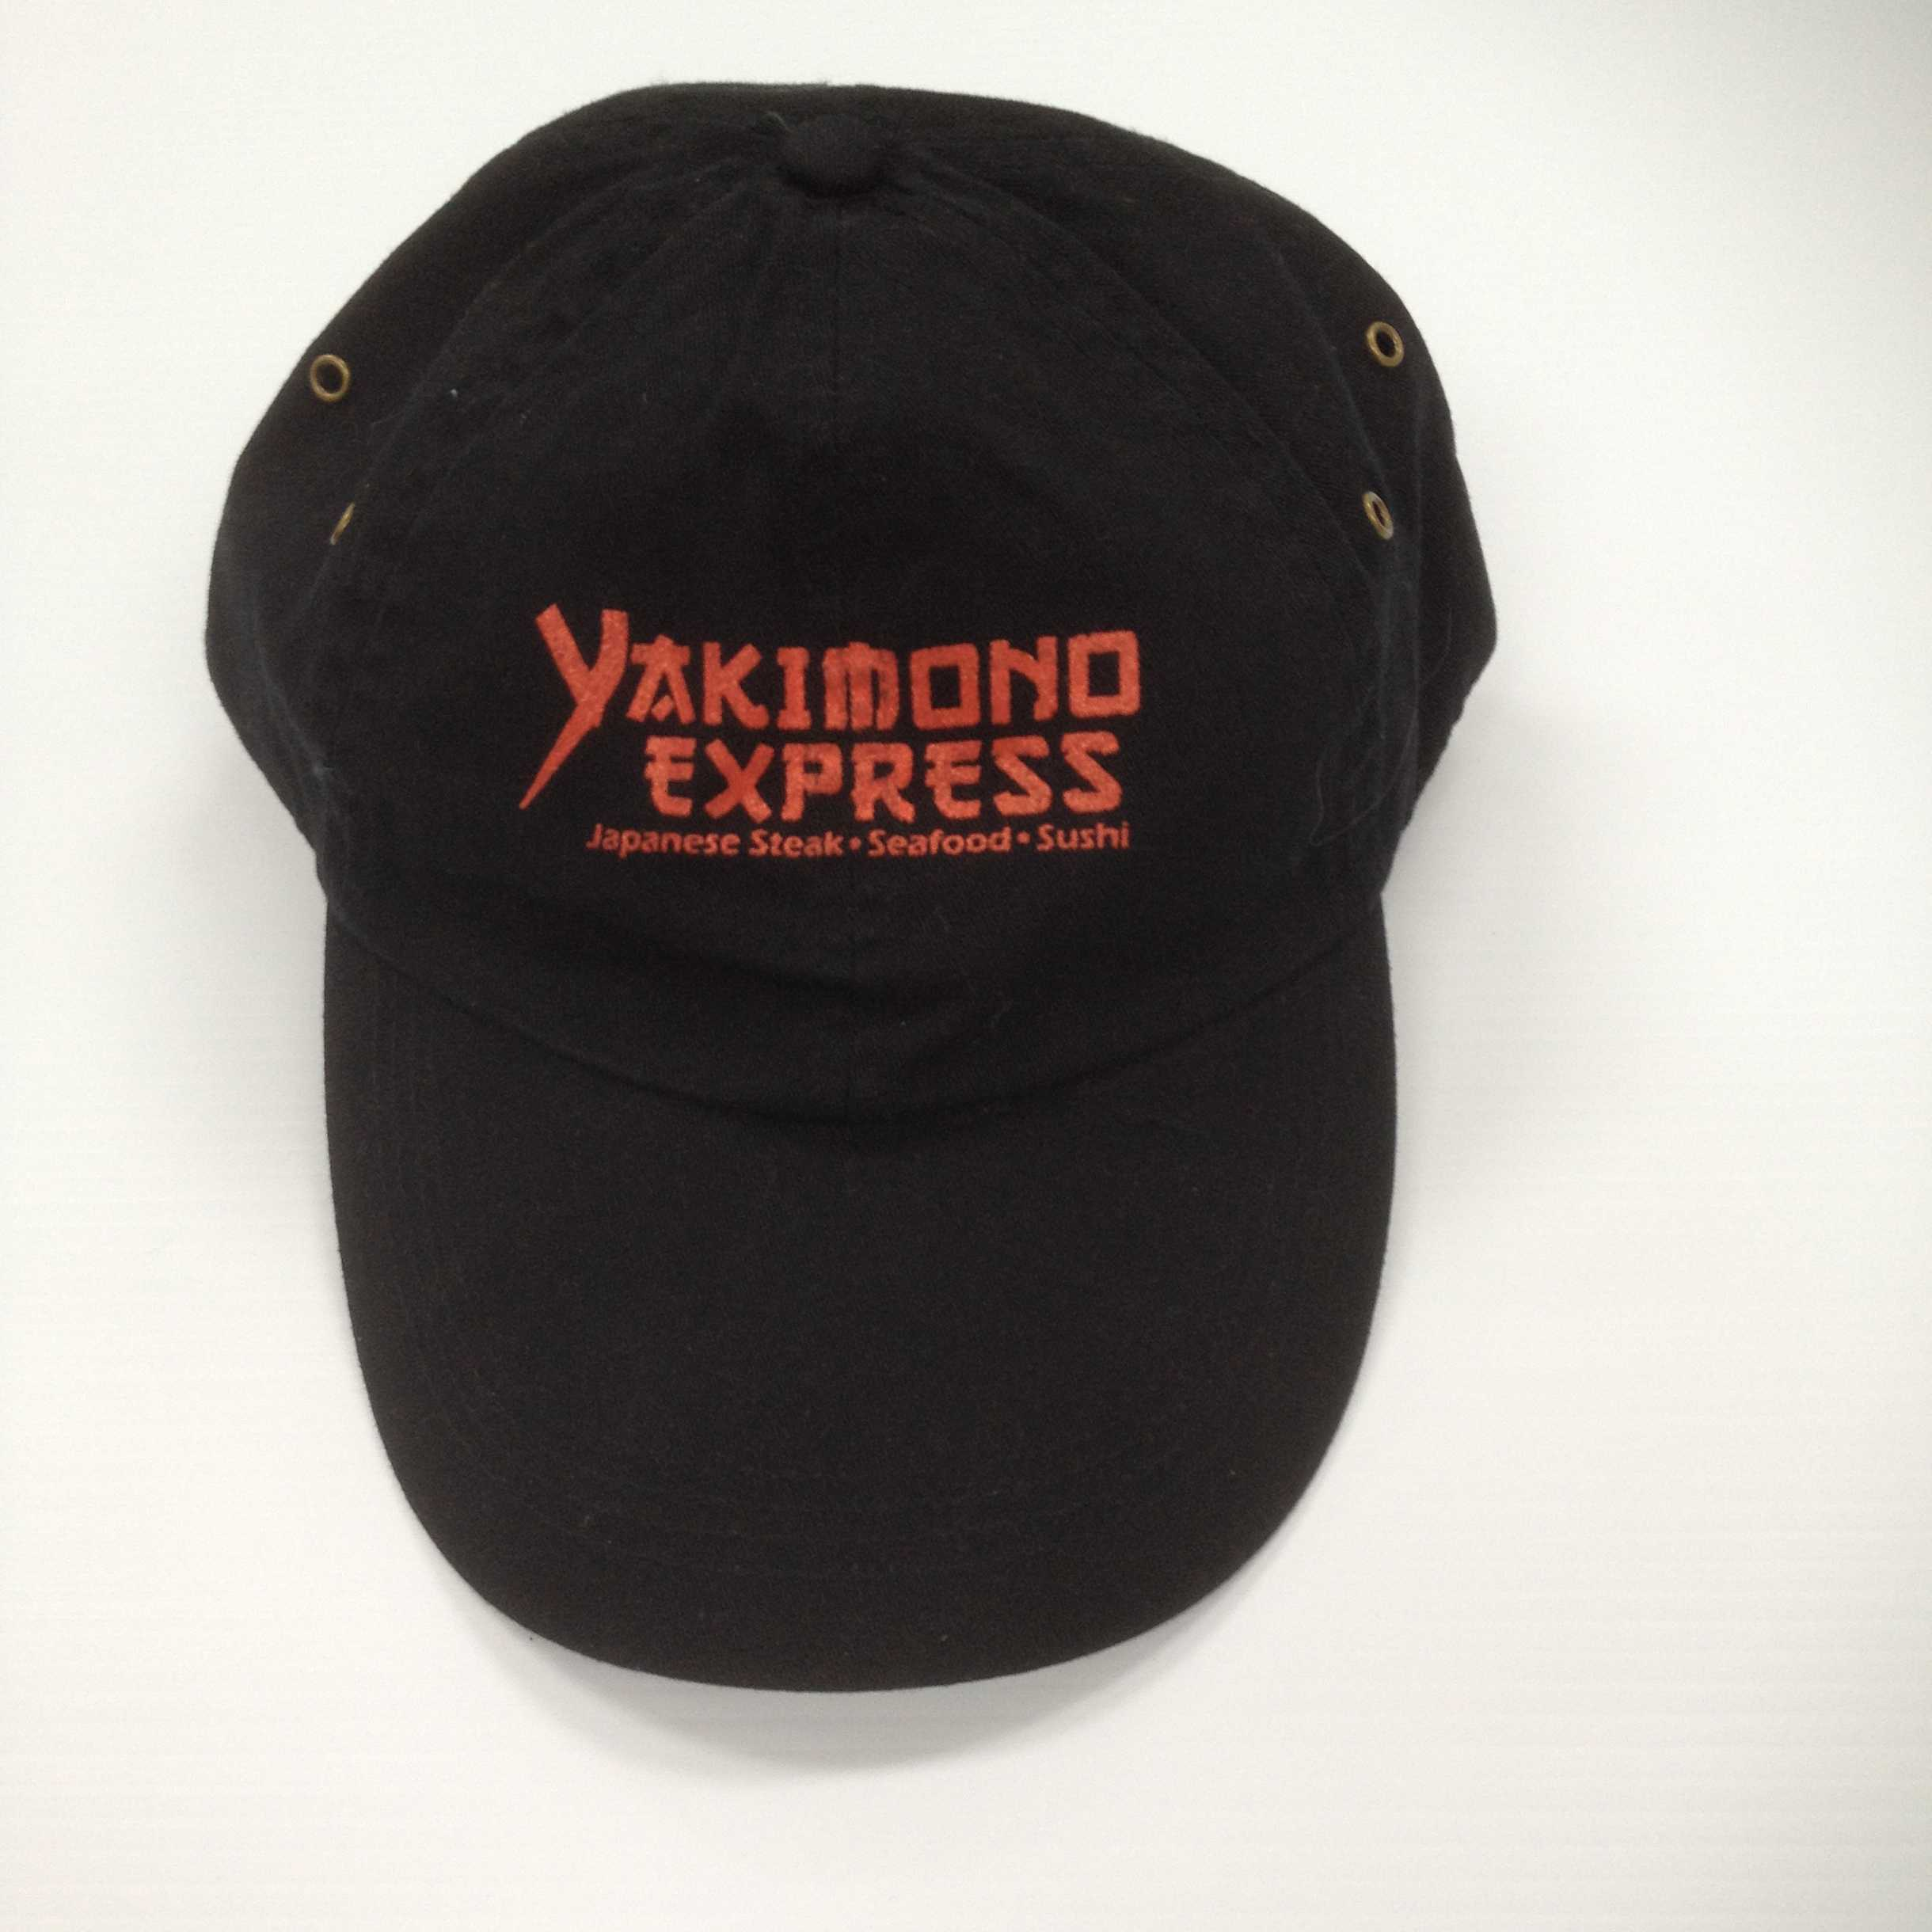 Yakimono hat for T shirt and hat printing